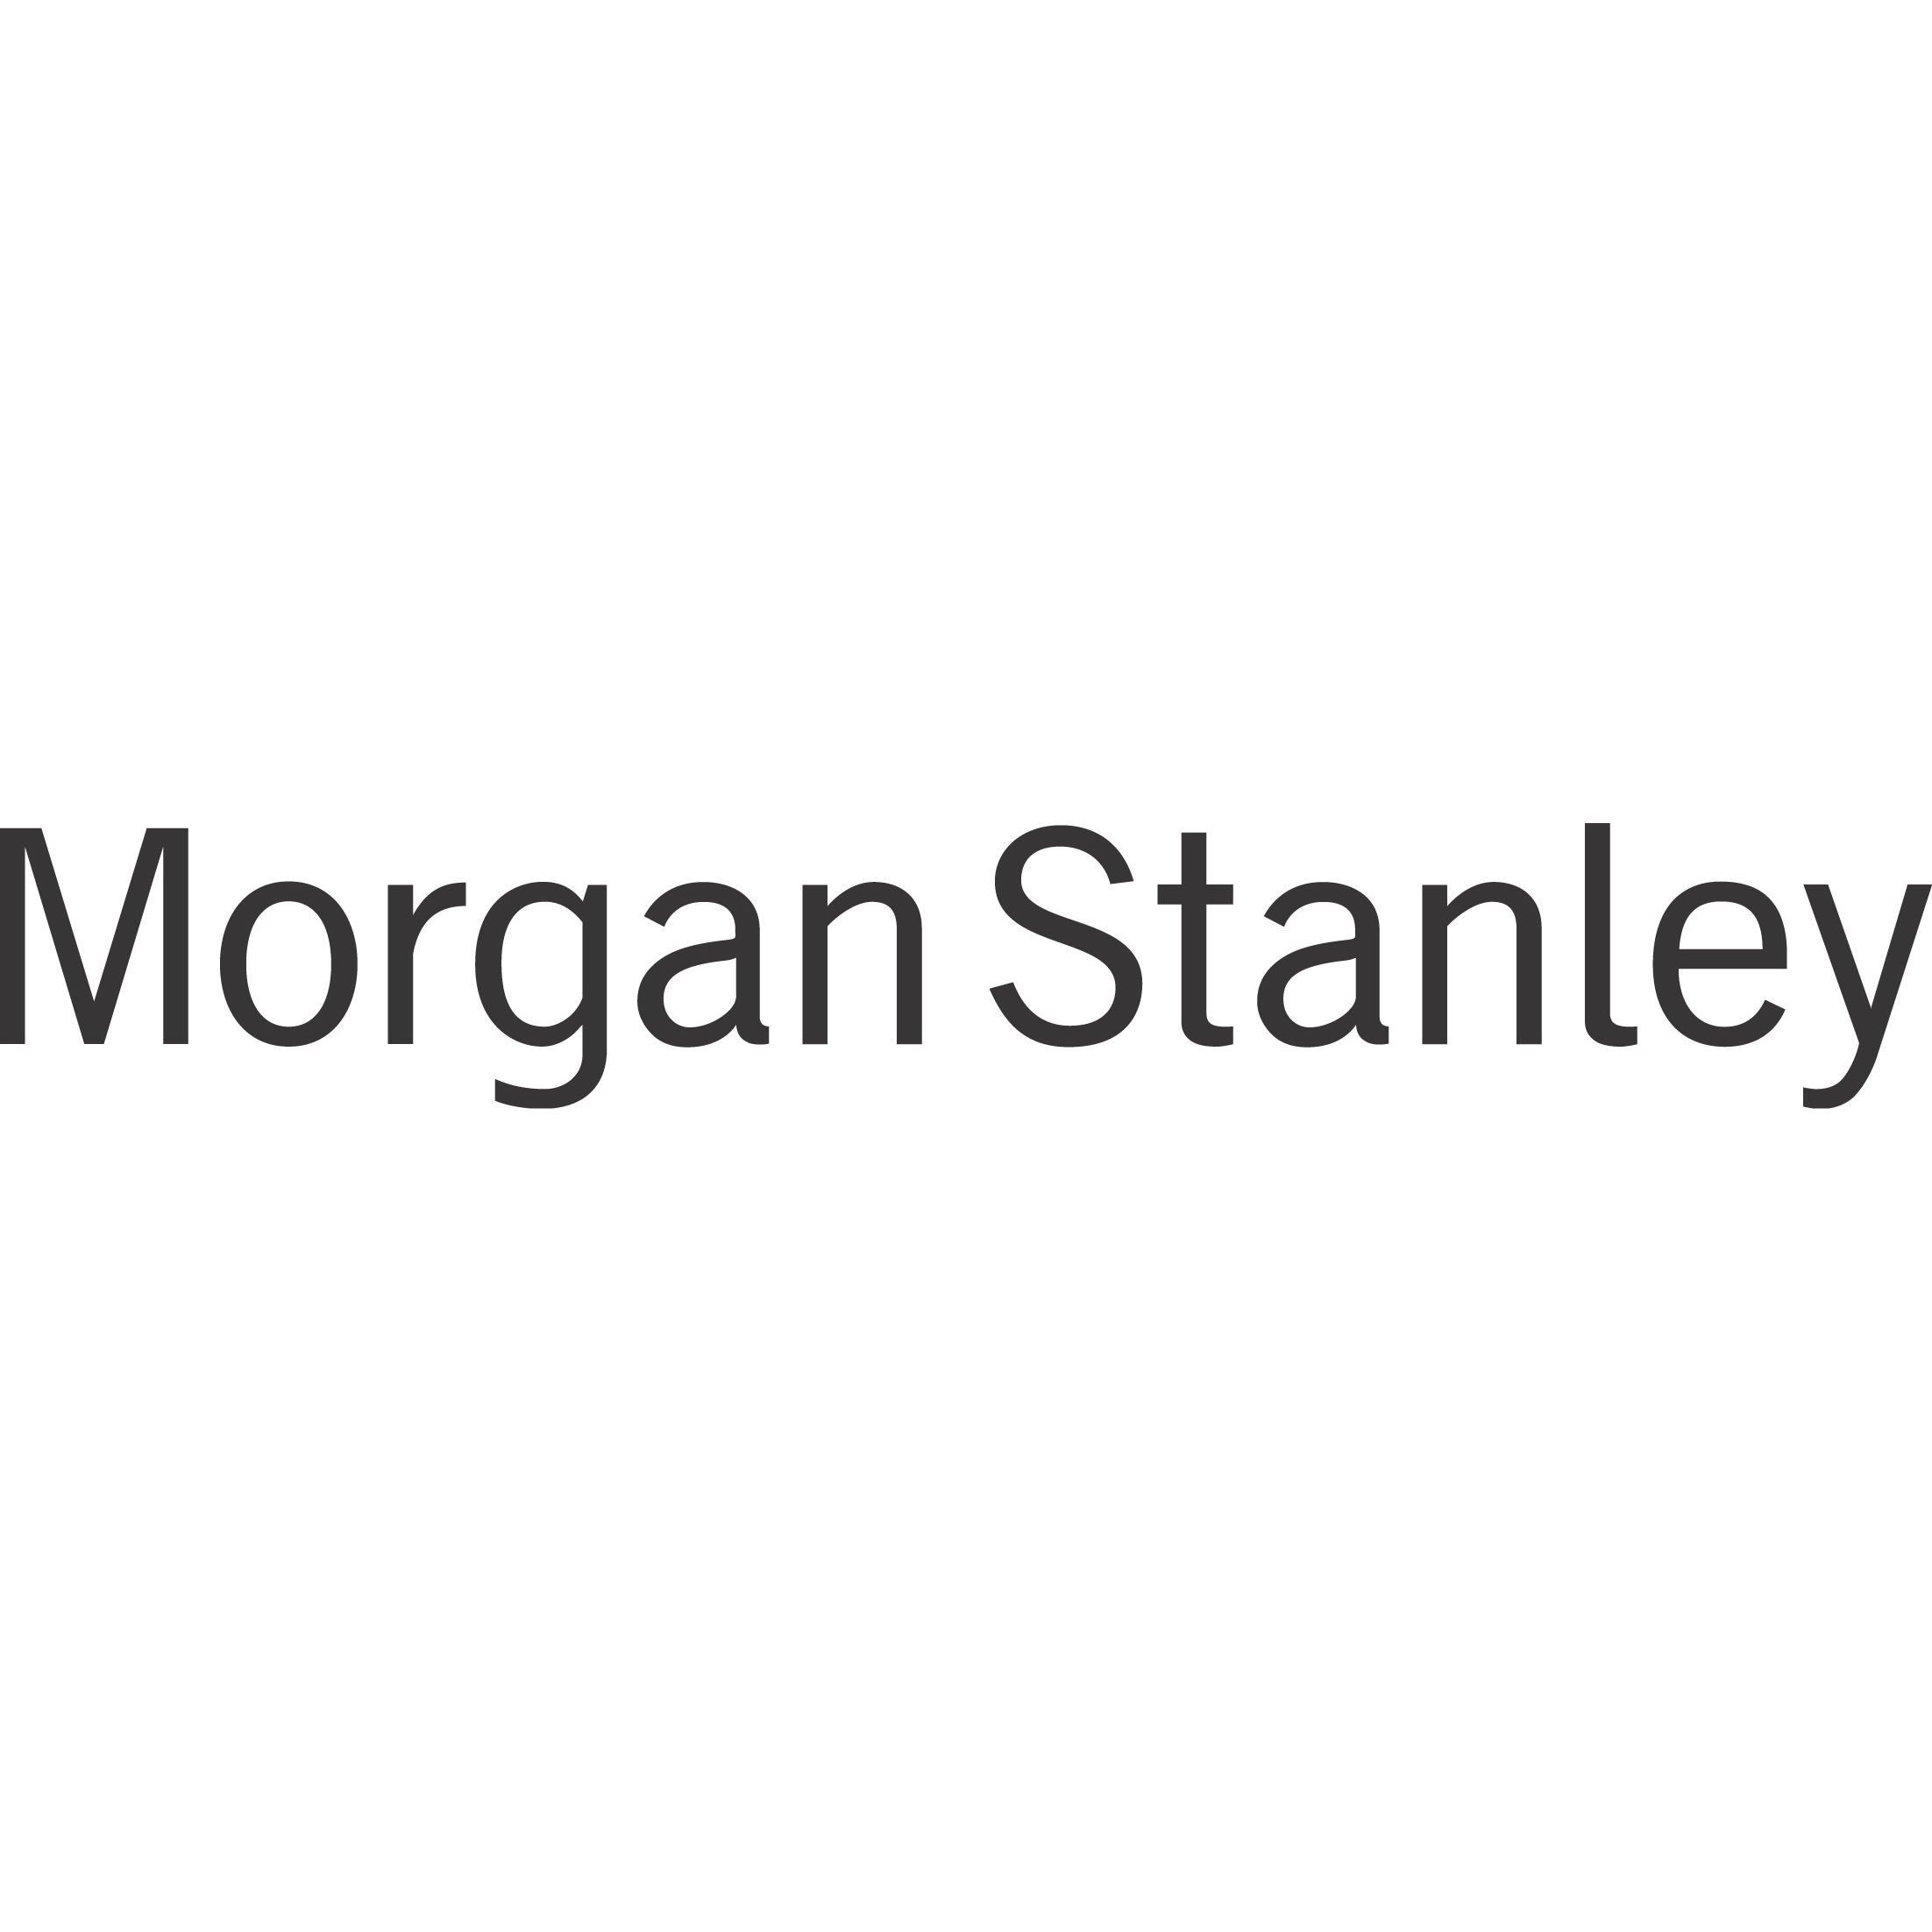 Peter J W Stocker - Morgan Stanley | Financial Advisor in Palm Beach Gardens,Florida